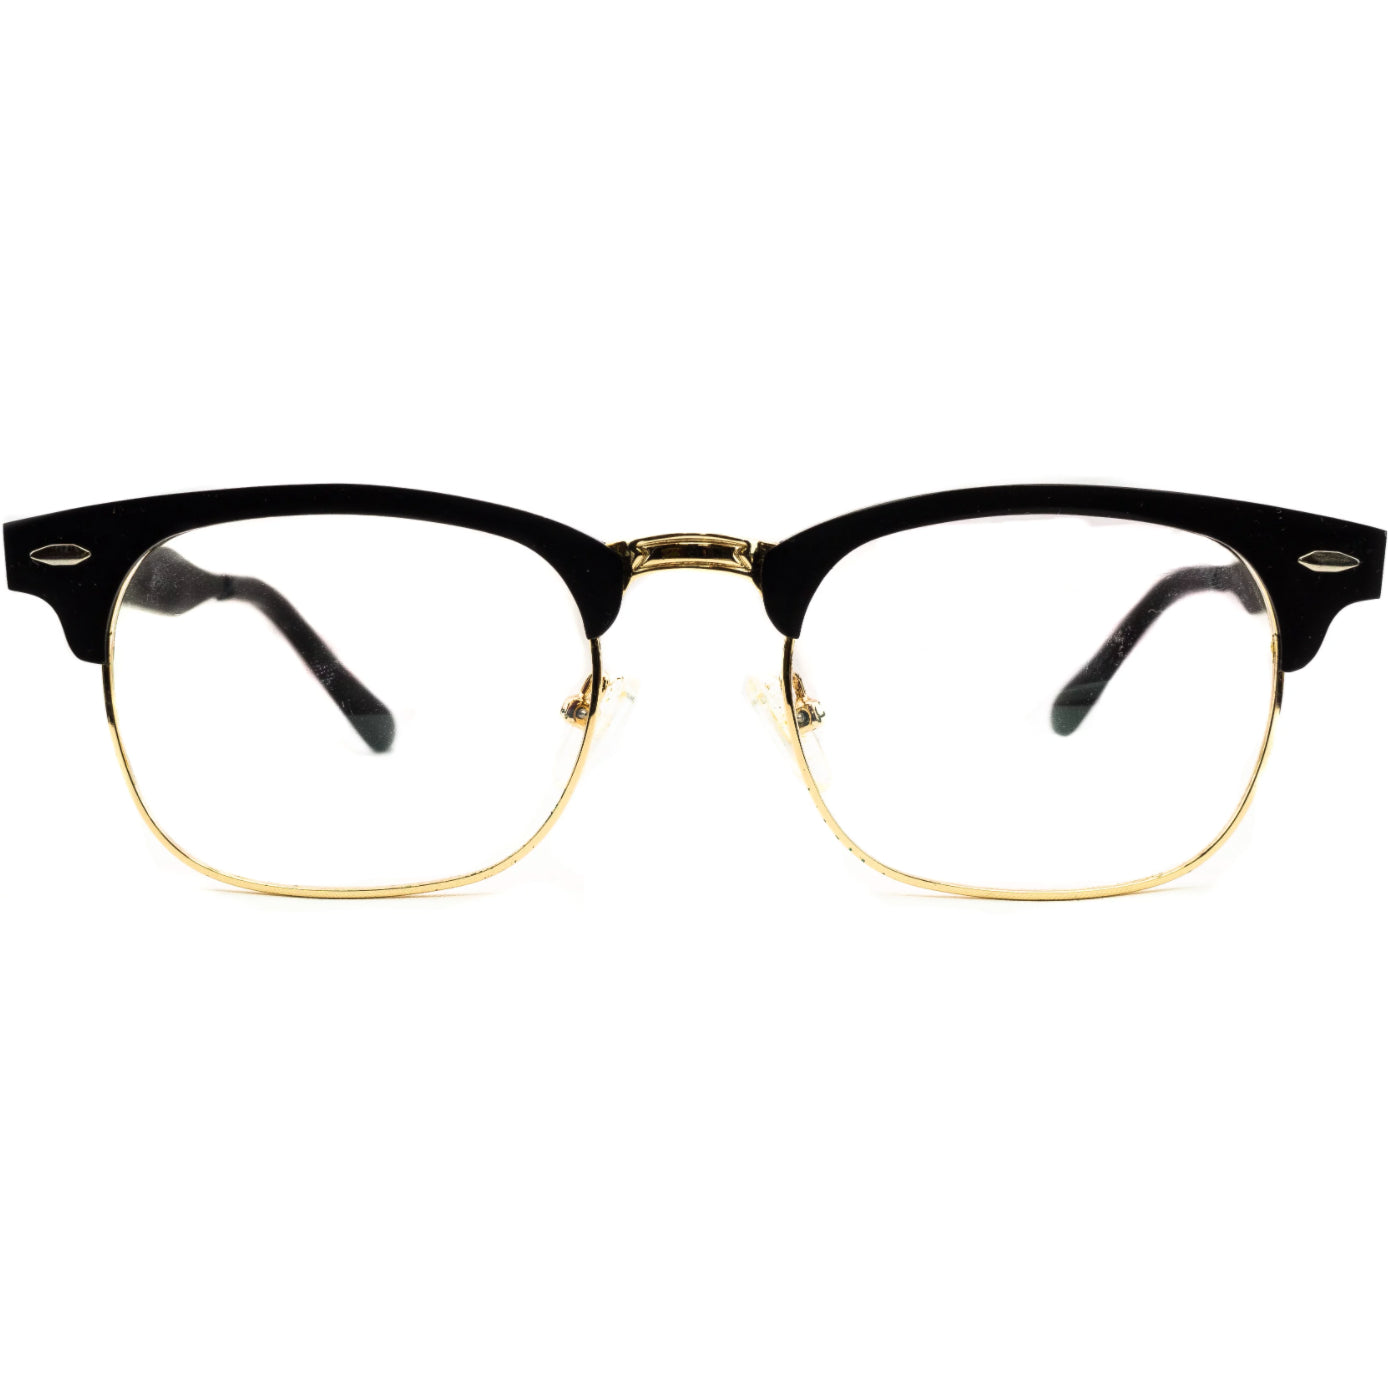 Eyeglasses - Patriot AD 03